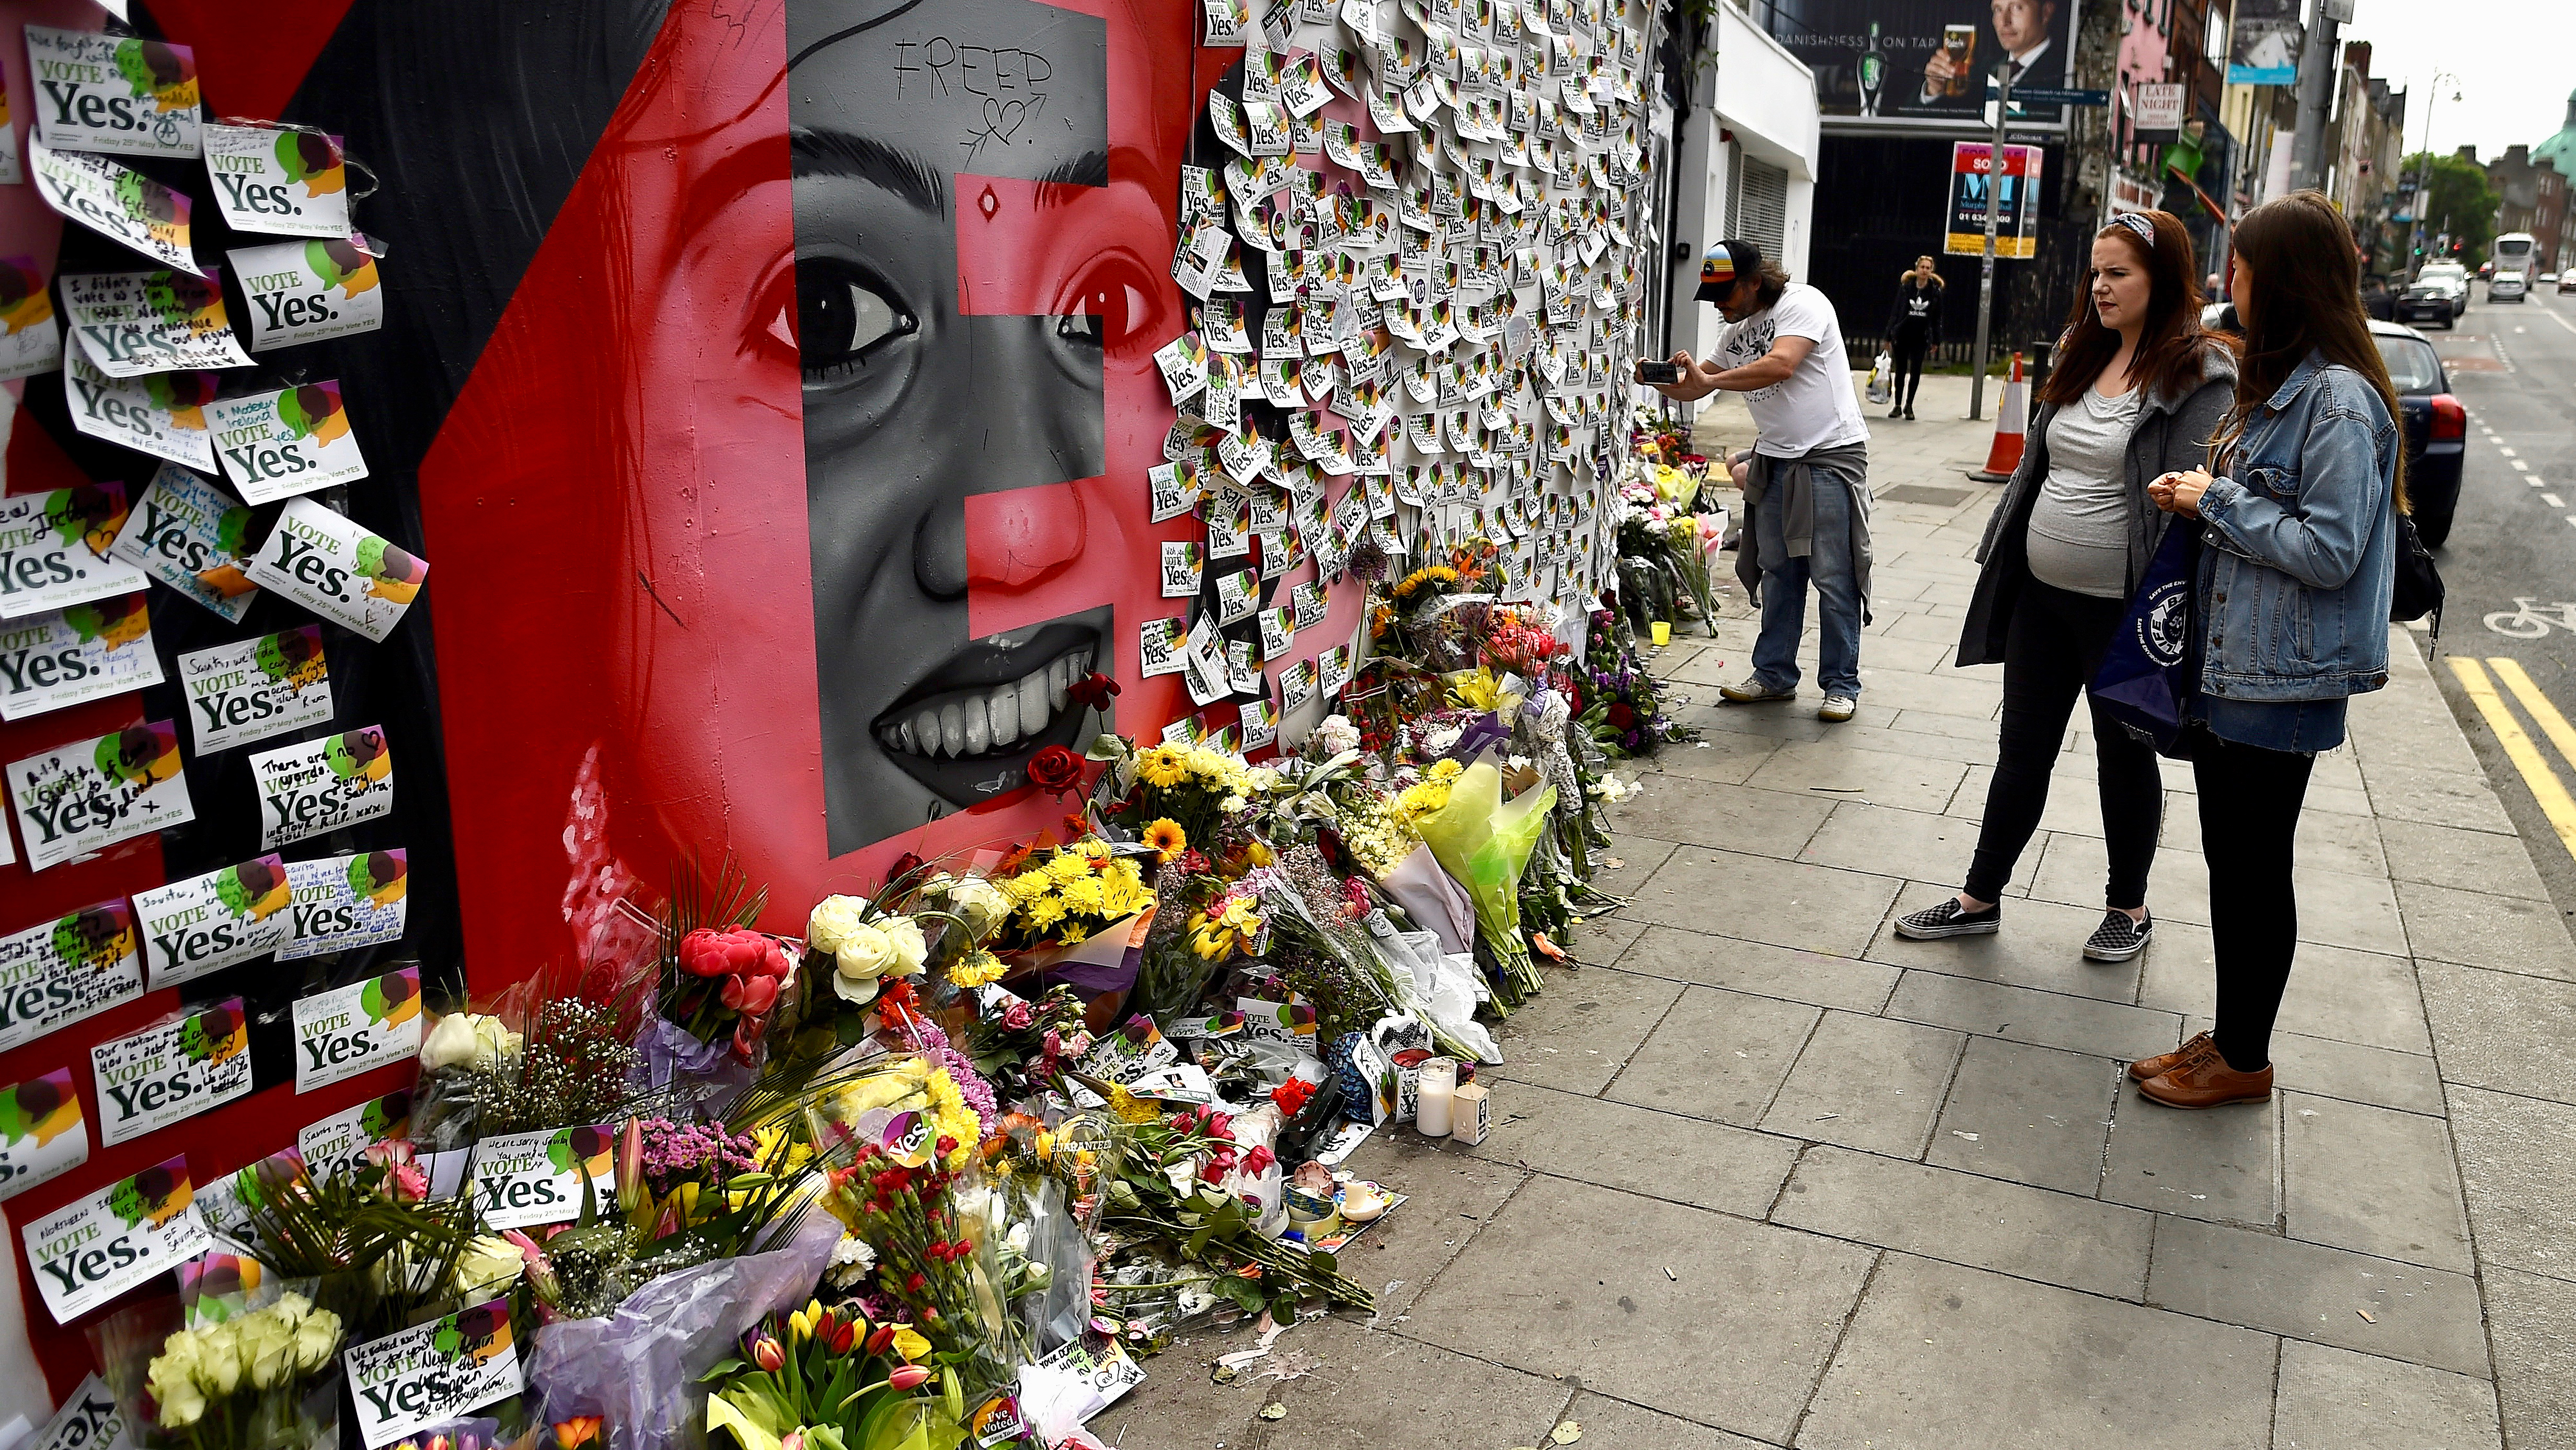 Messages are left at a memorial in Dublin to Savita Halappanava, who died from an infection after miscarrying her first child at an Irish hospital in 2012, one day after Irish voters took part in a national referendum to liberalize abortion laws on May 25